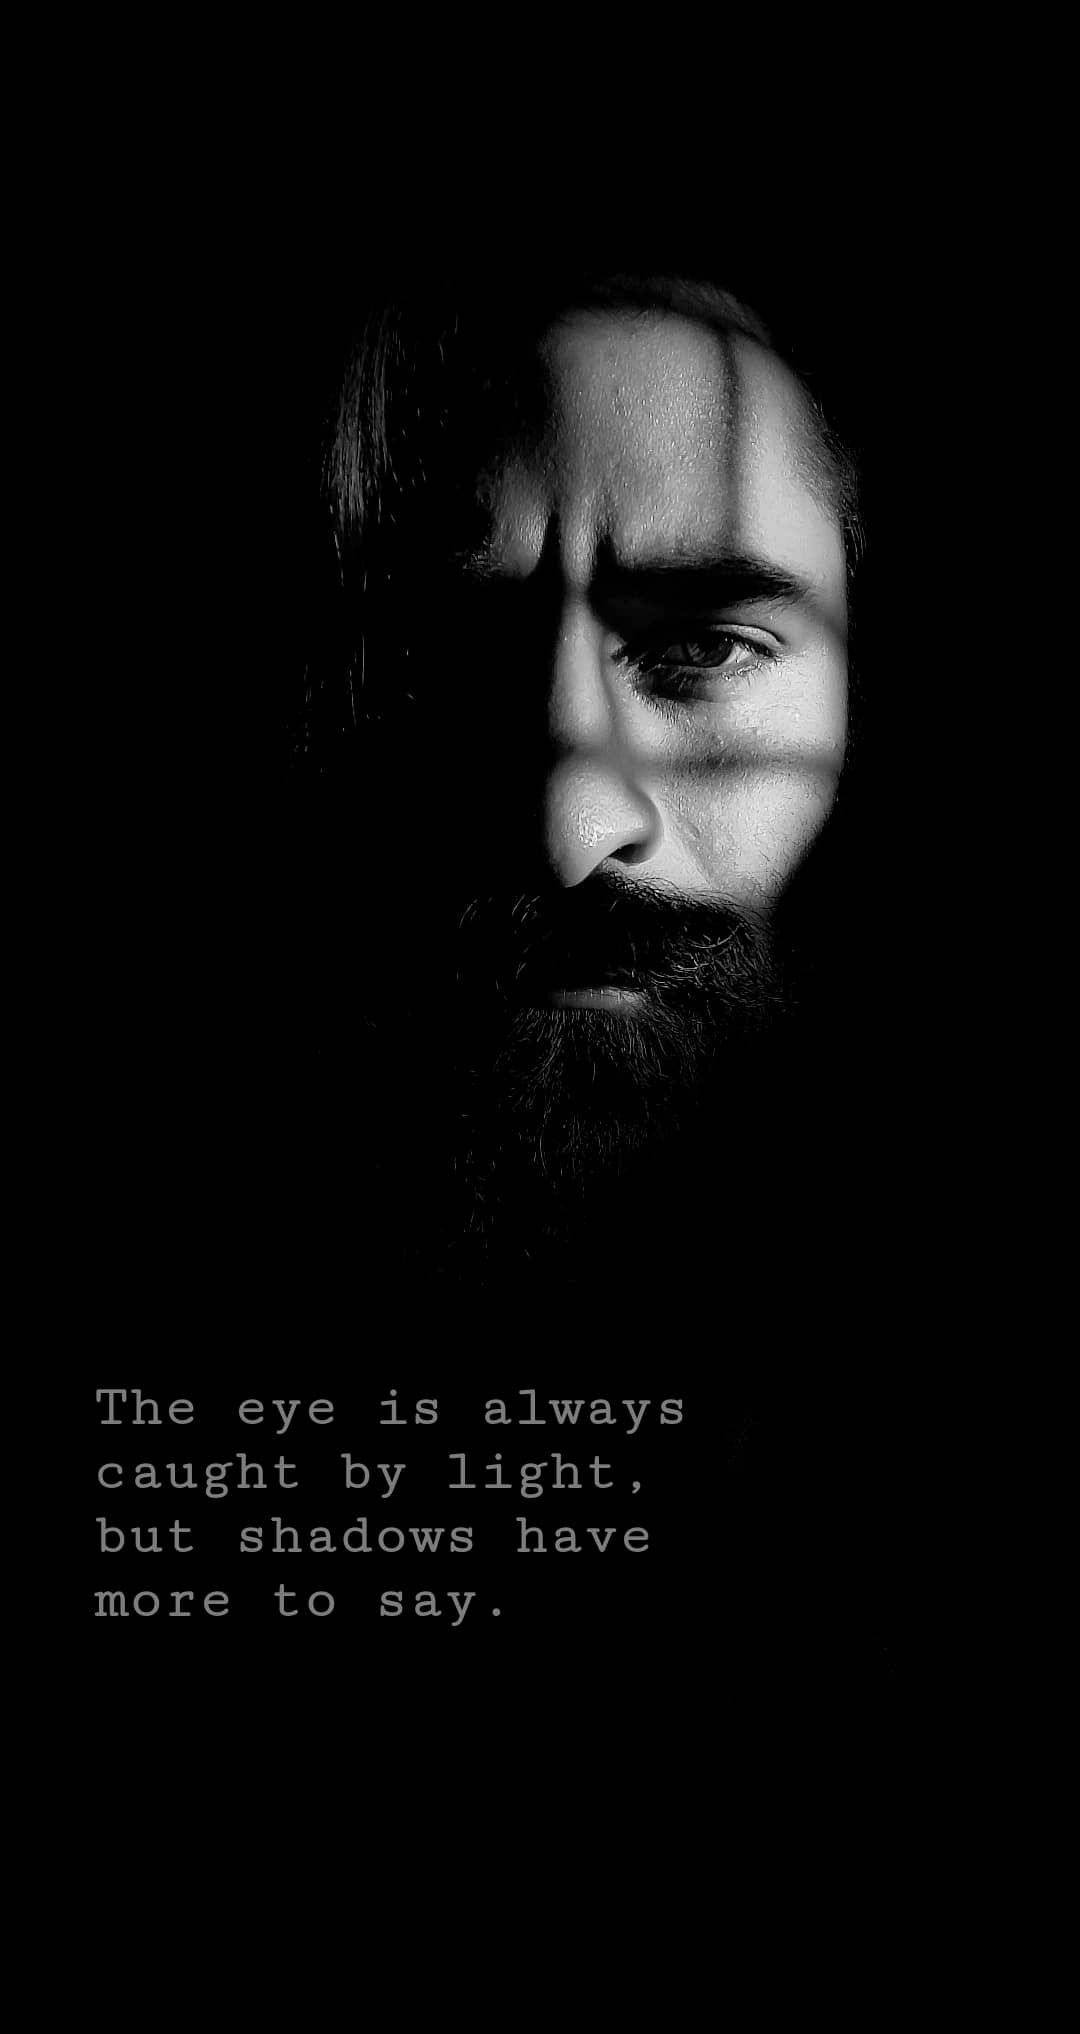 Black And White Photography Beard Love Quote Love Wallpaper